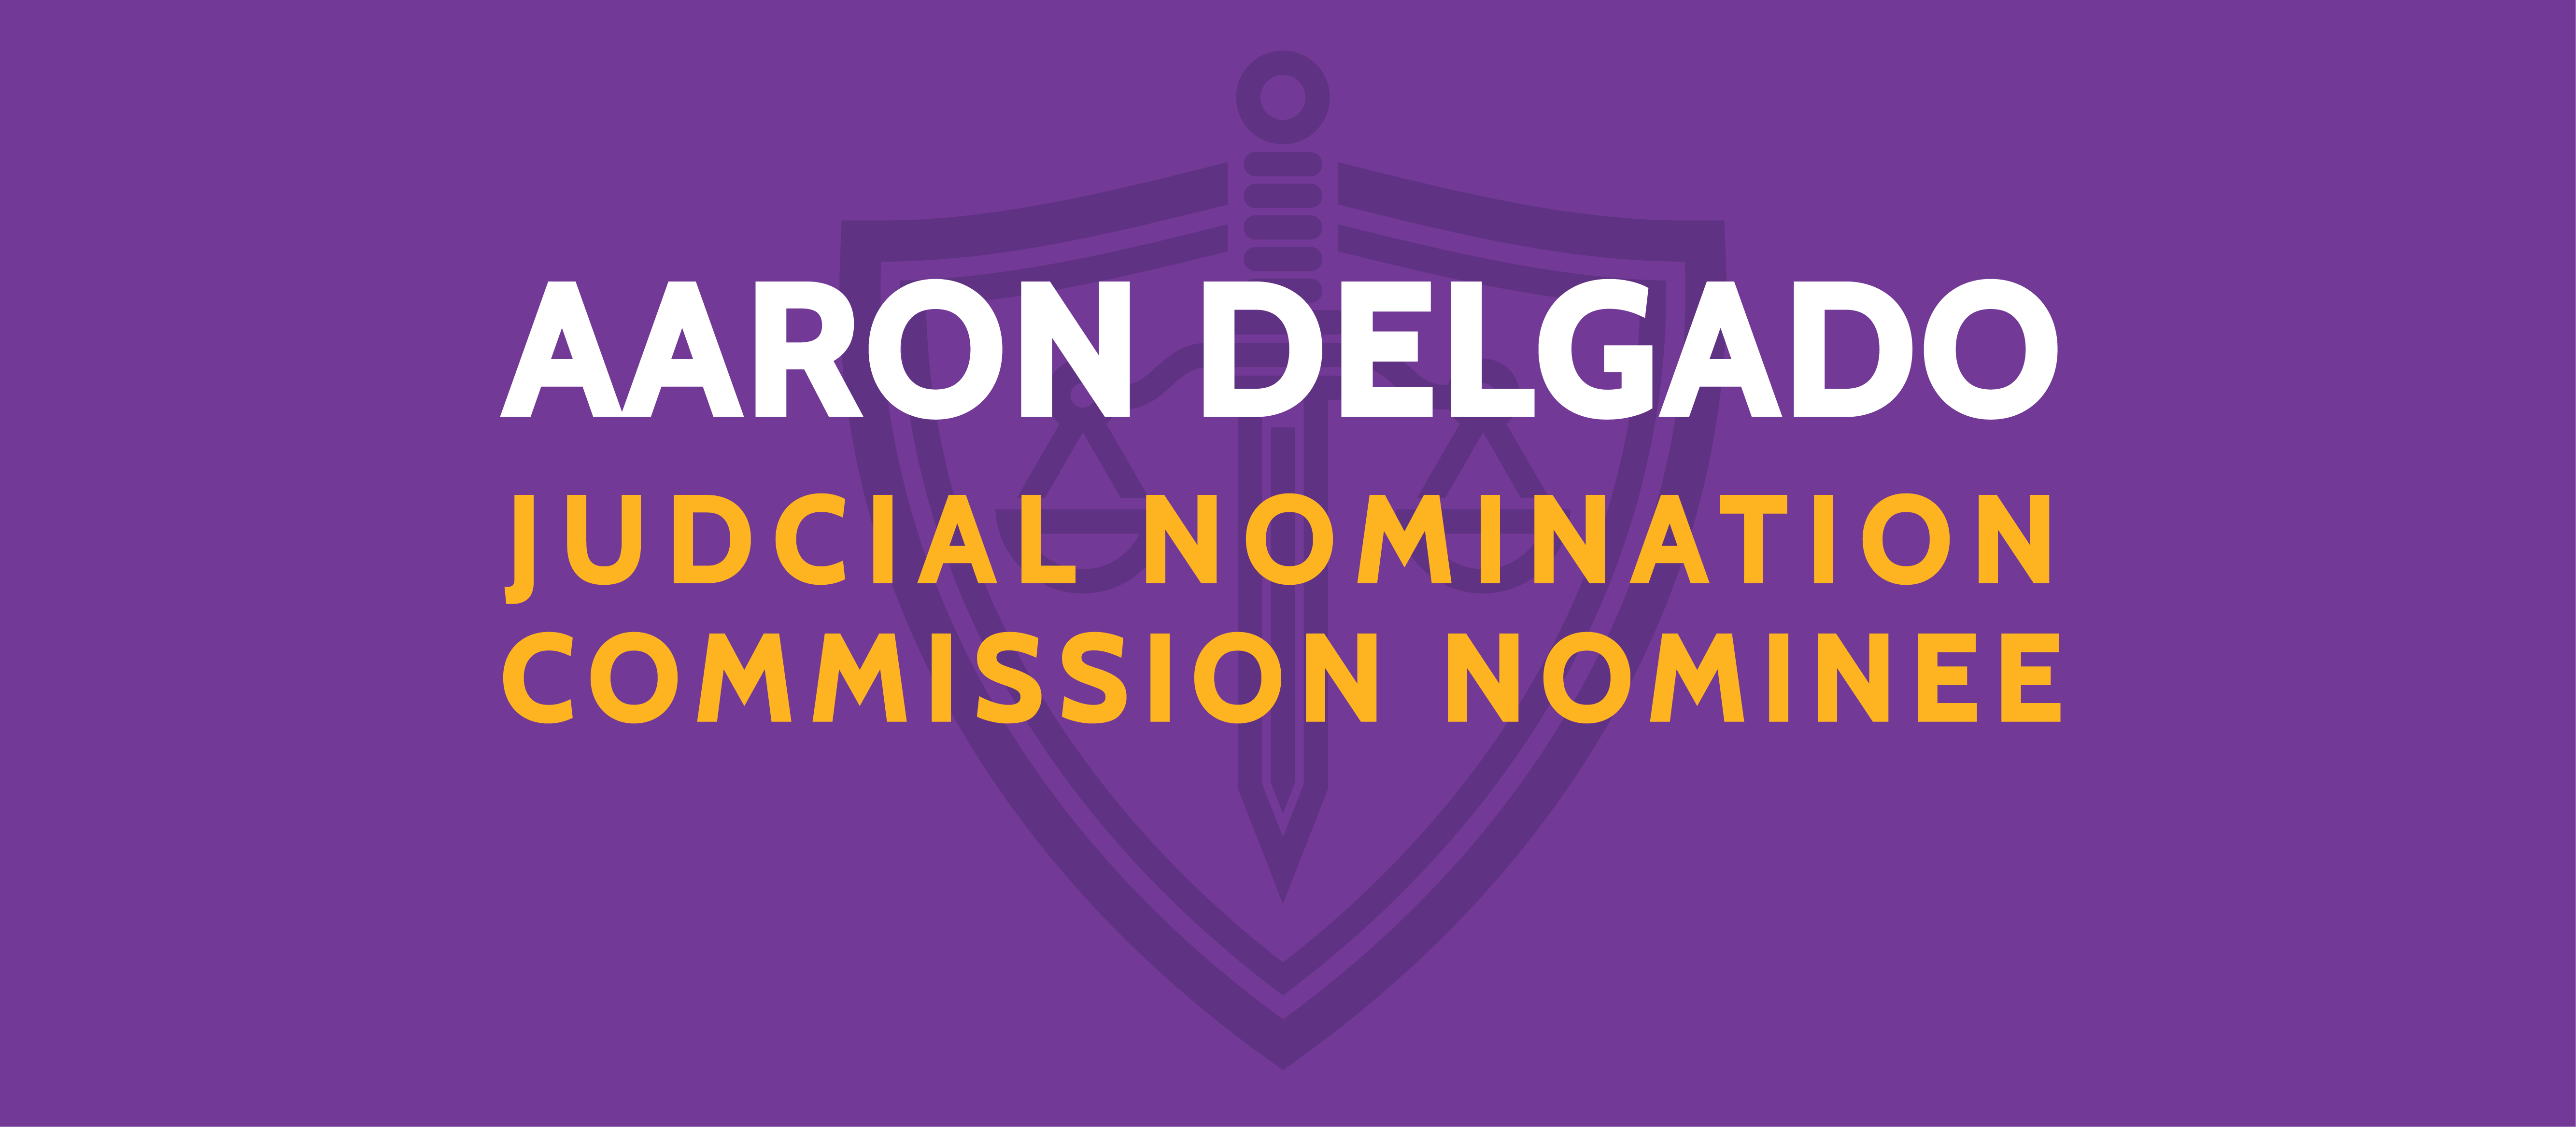 Aaron Delgado nominated for the Florida Judicial Nominating Commission